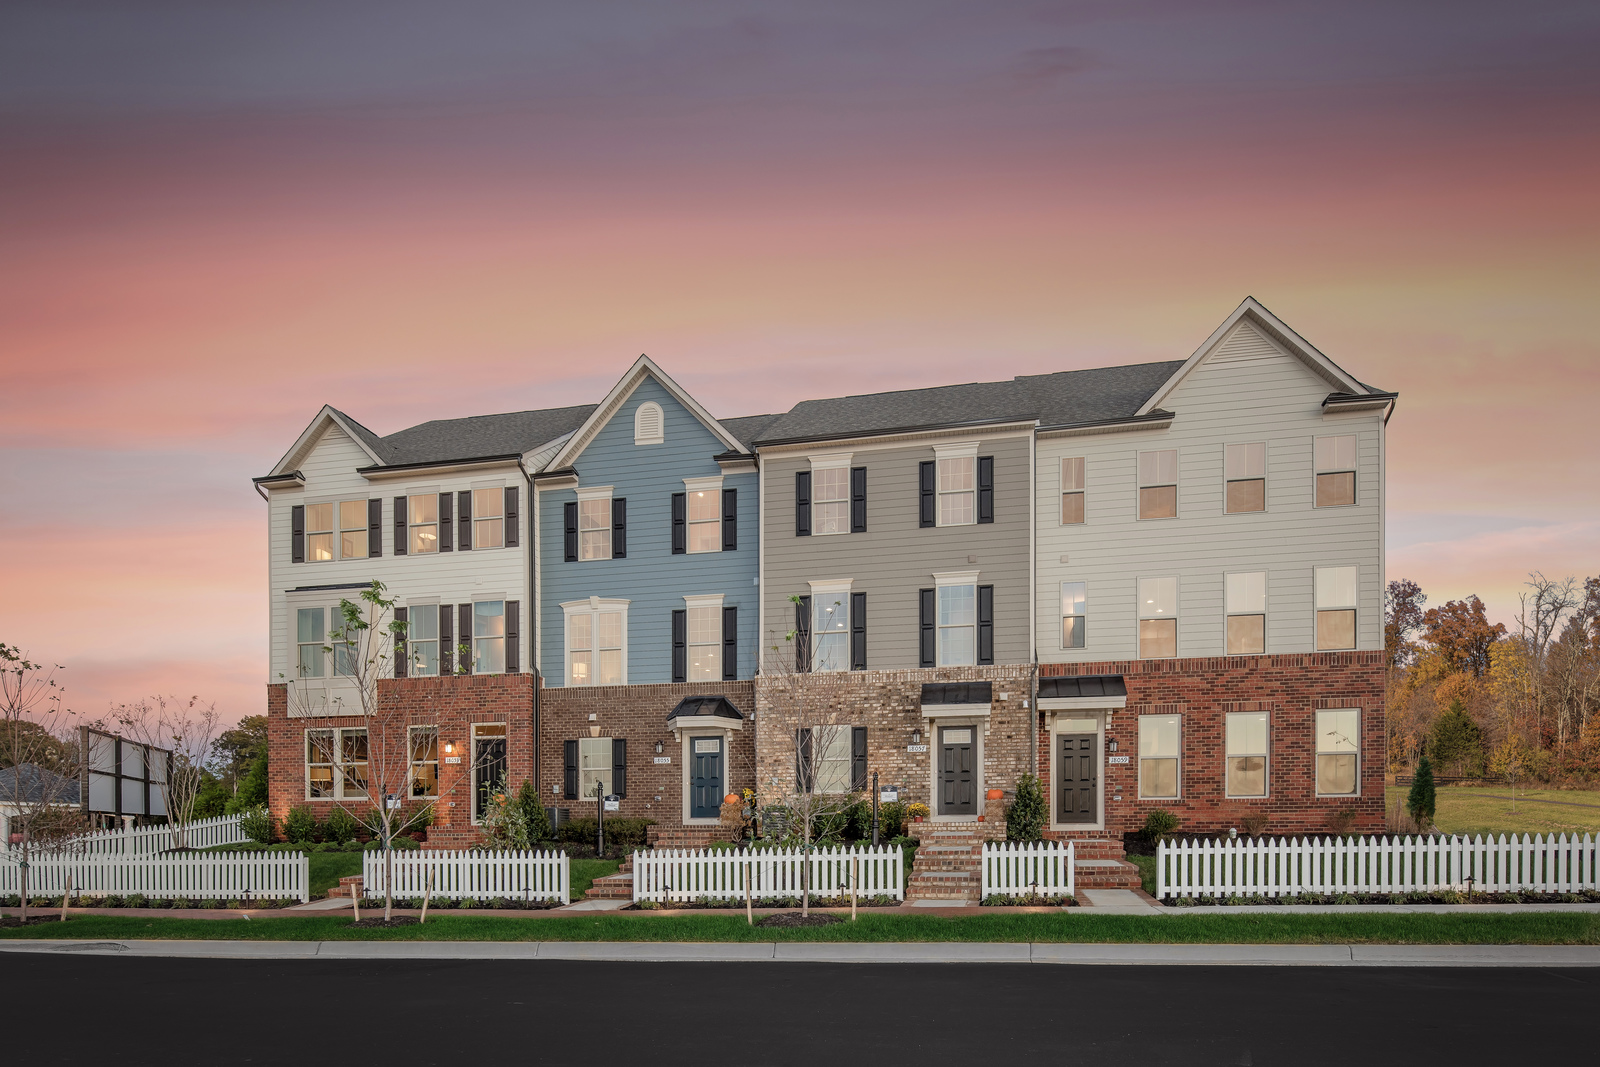 New Homes For Sale At Potomac Shores Towns In Woodbridge Va Within